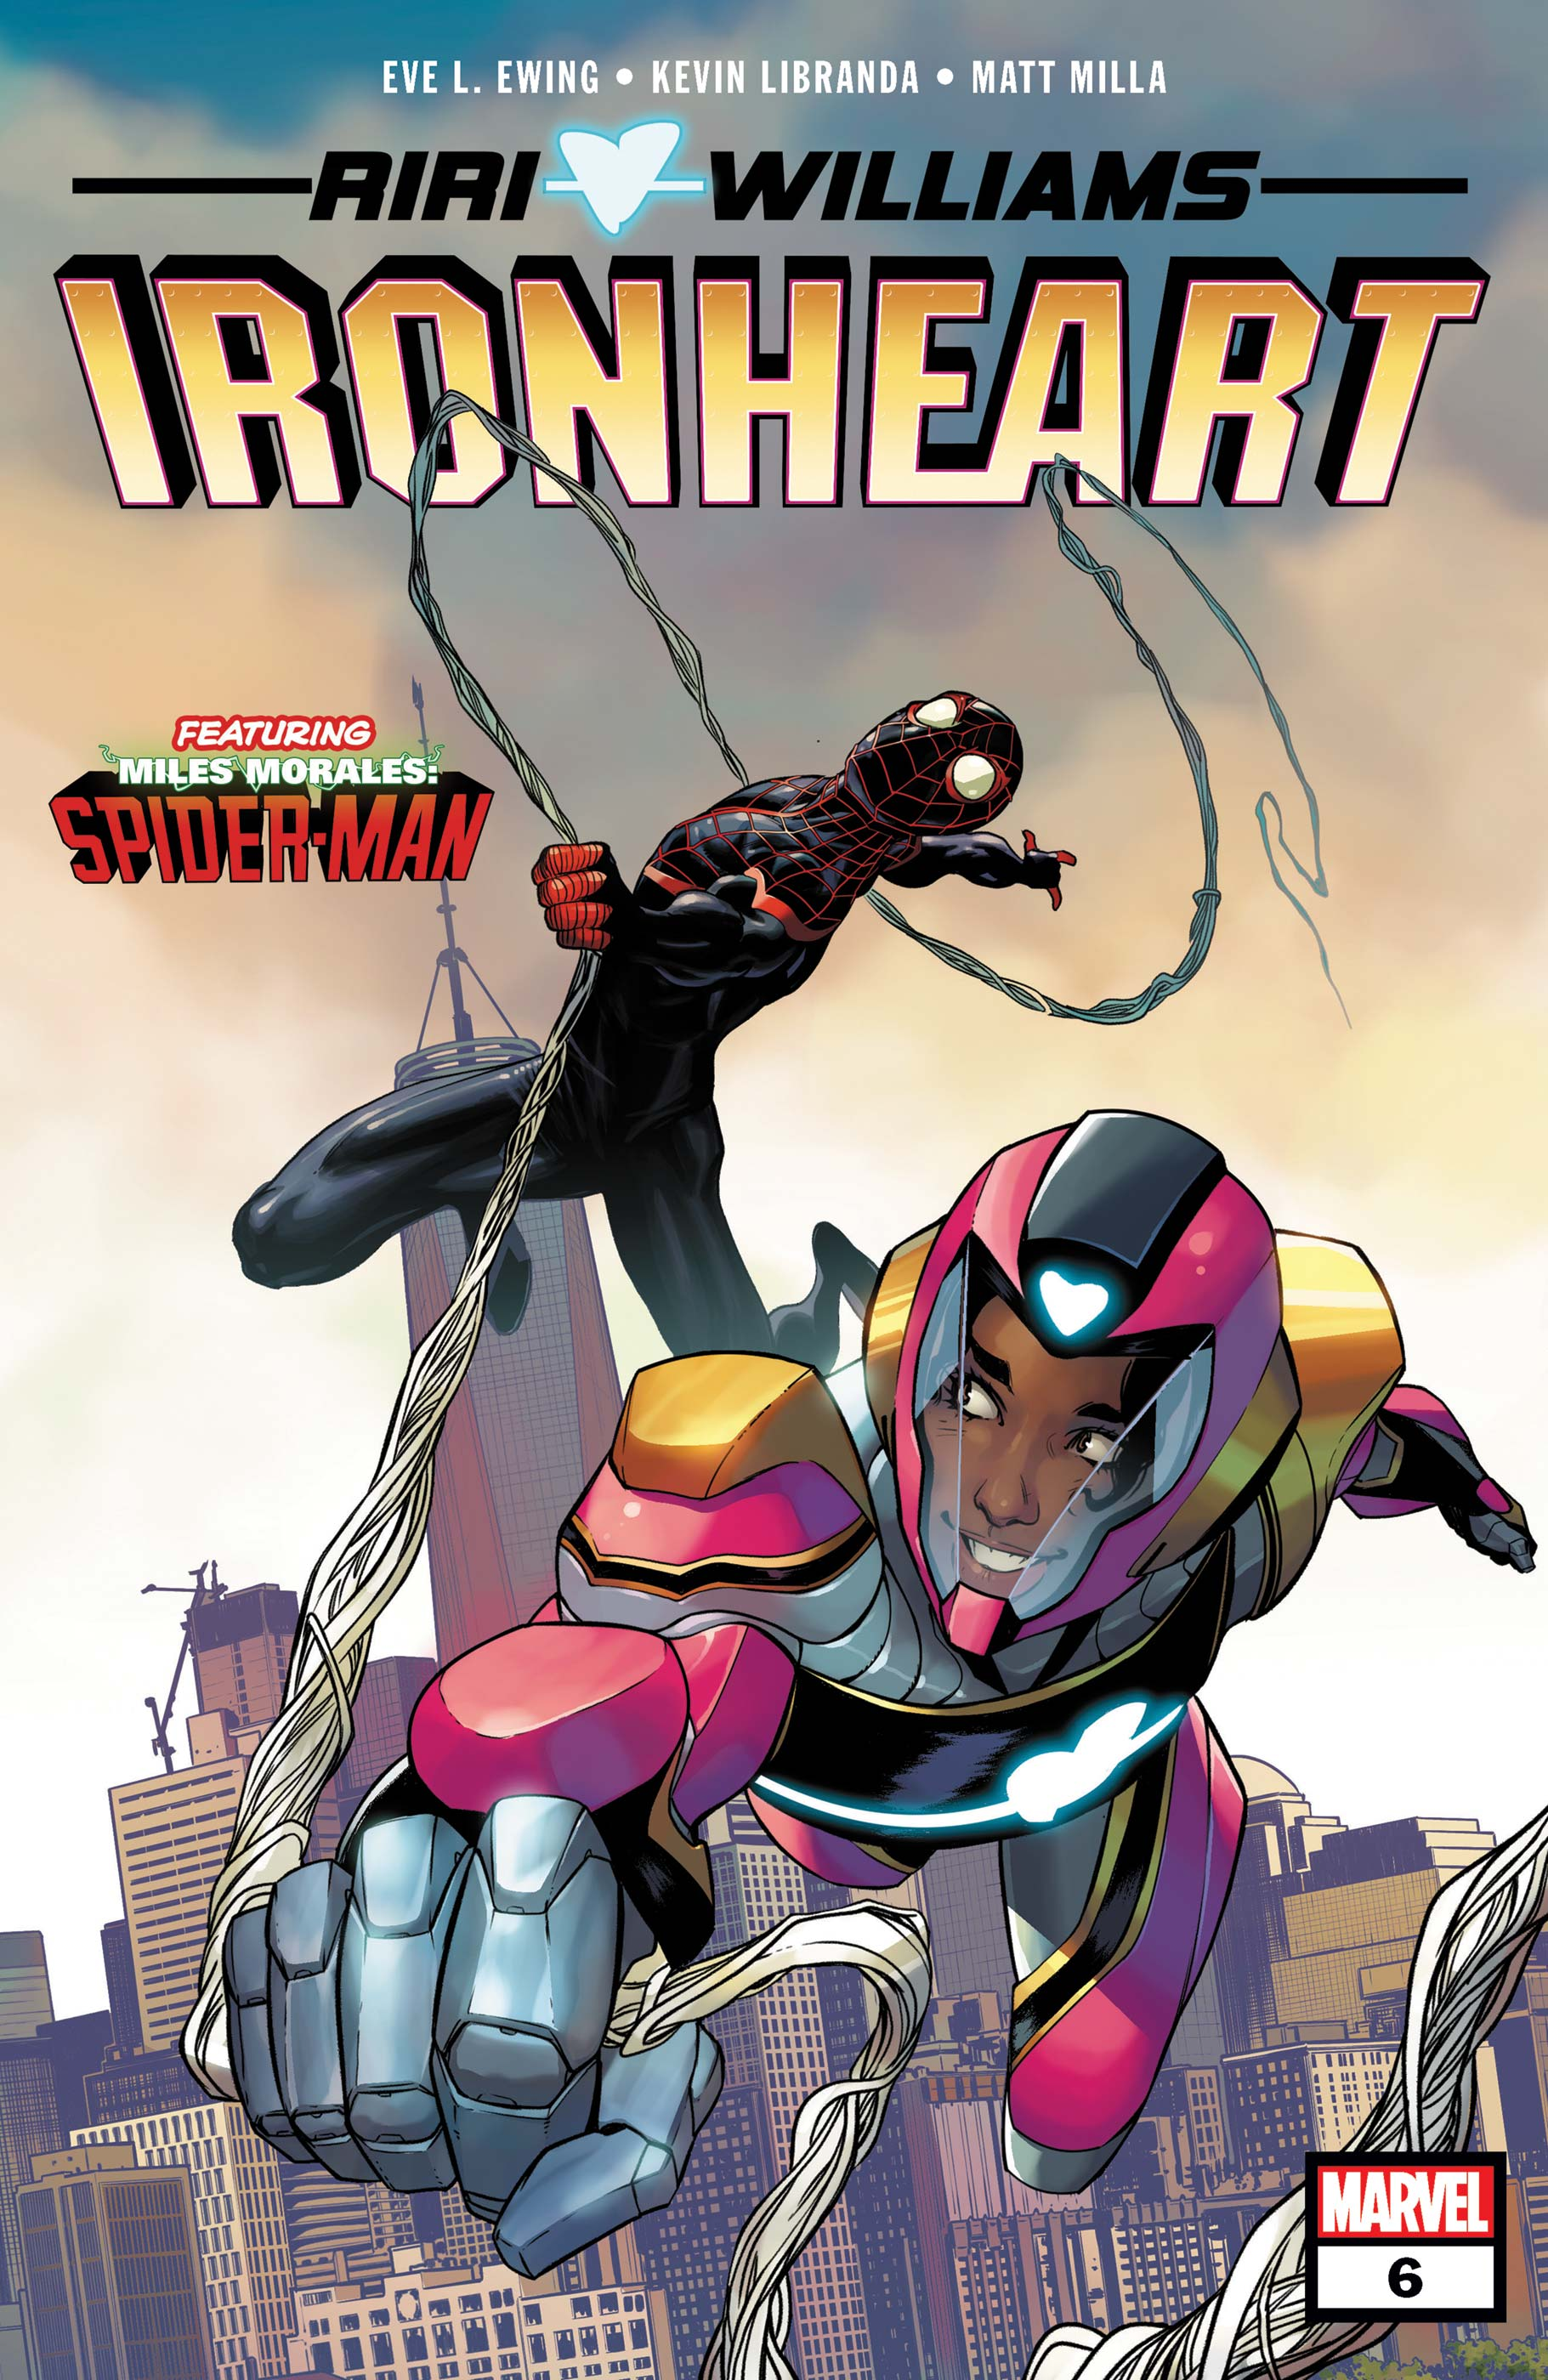 Ironheart #6. Cover by Stefano Caselli.